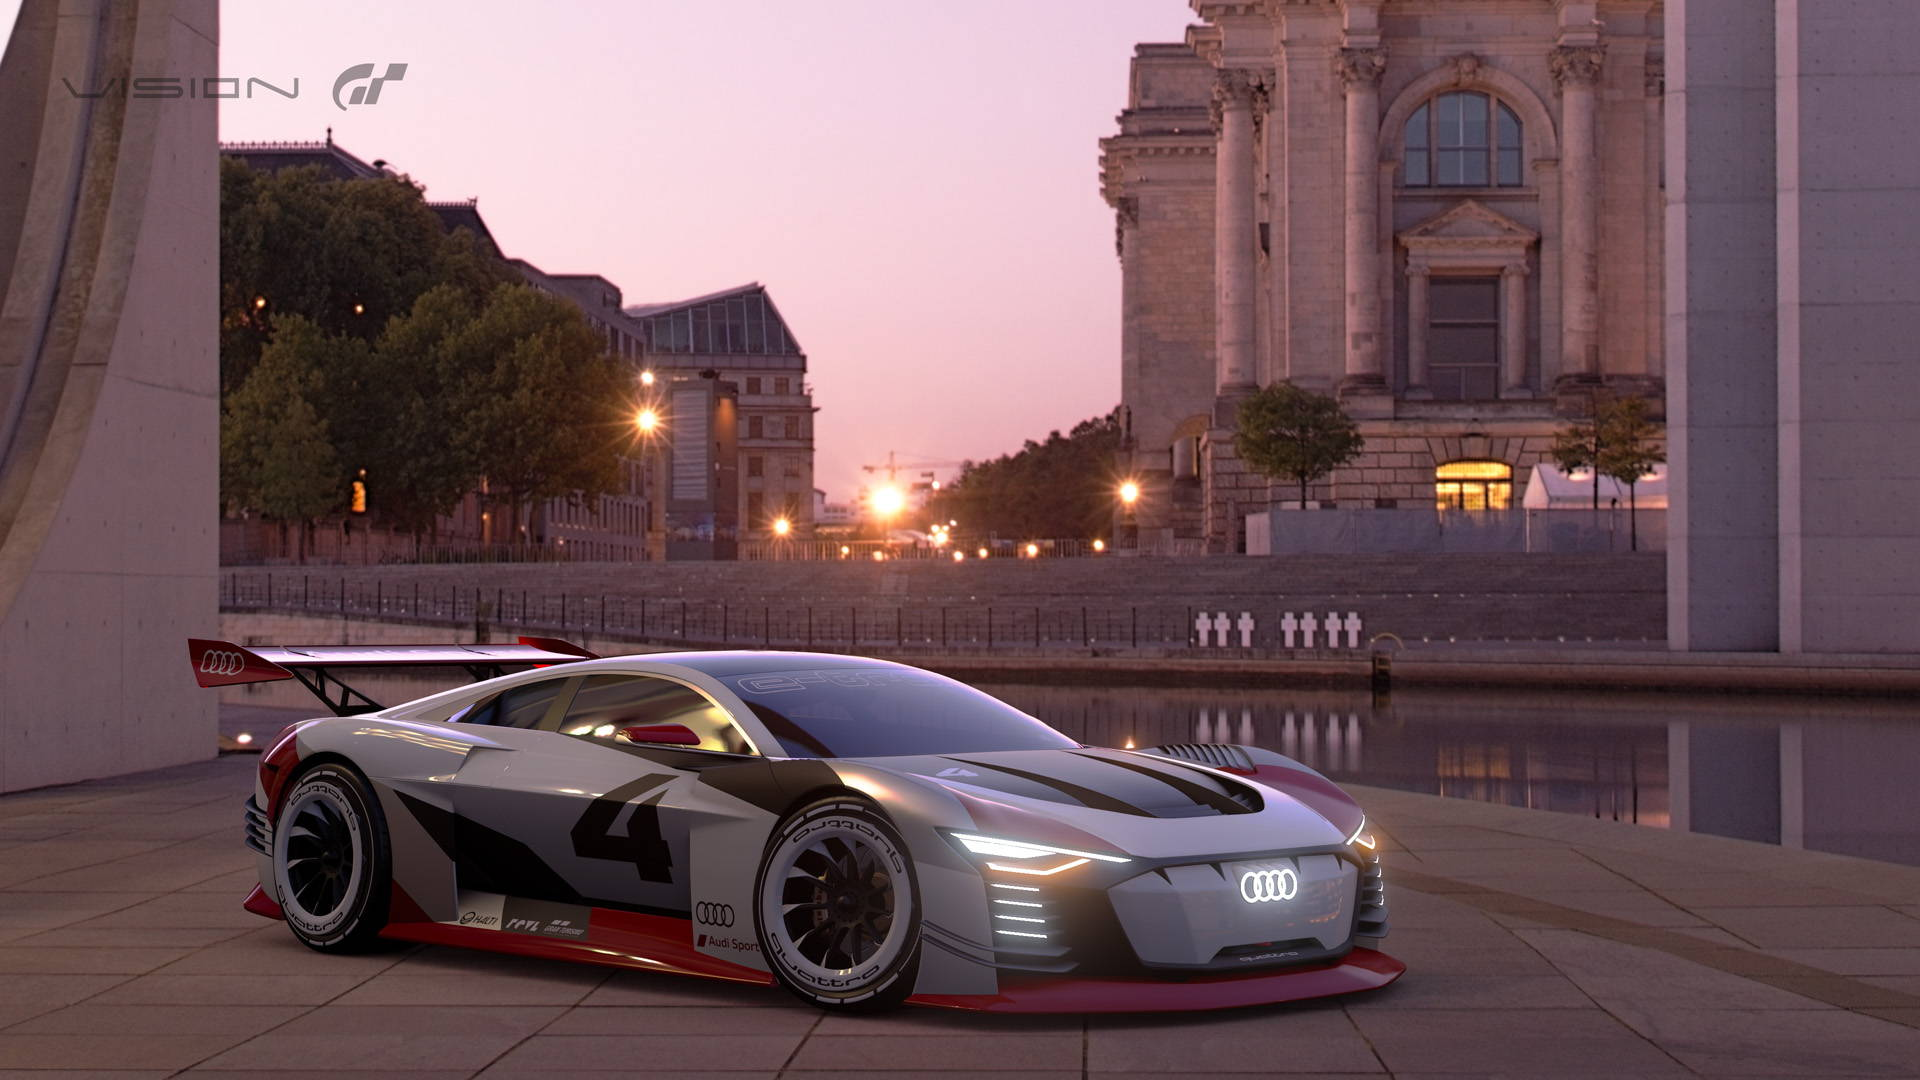 gtsport_audivgtimages_0002